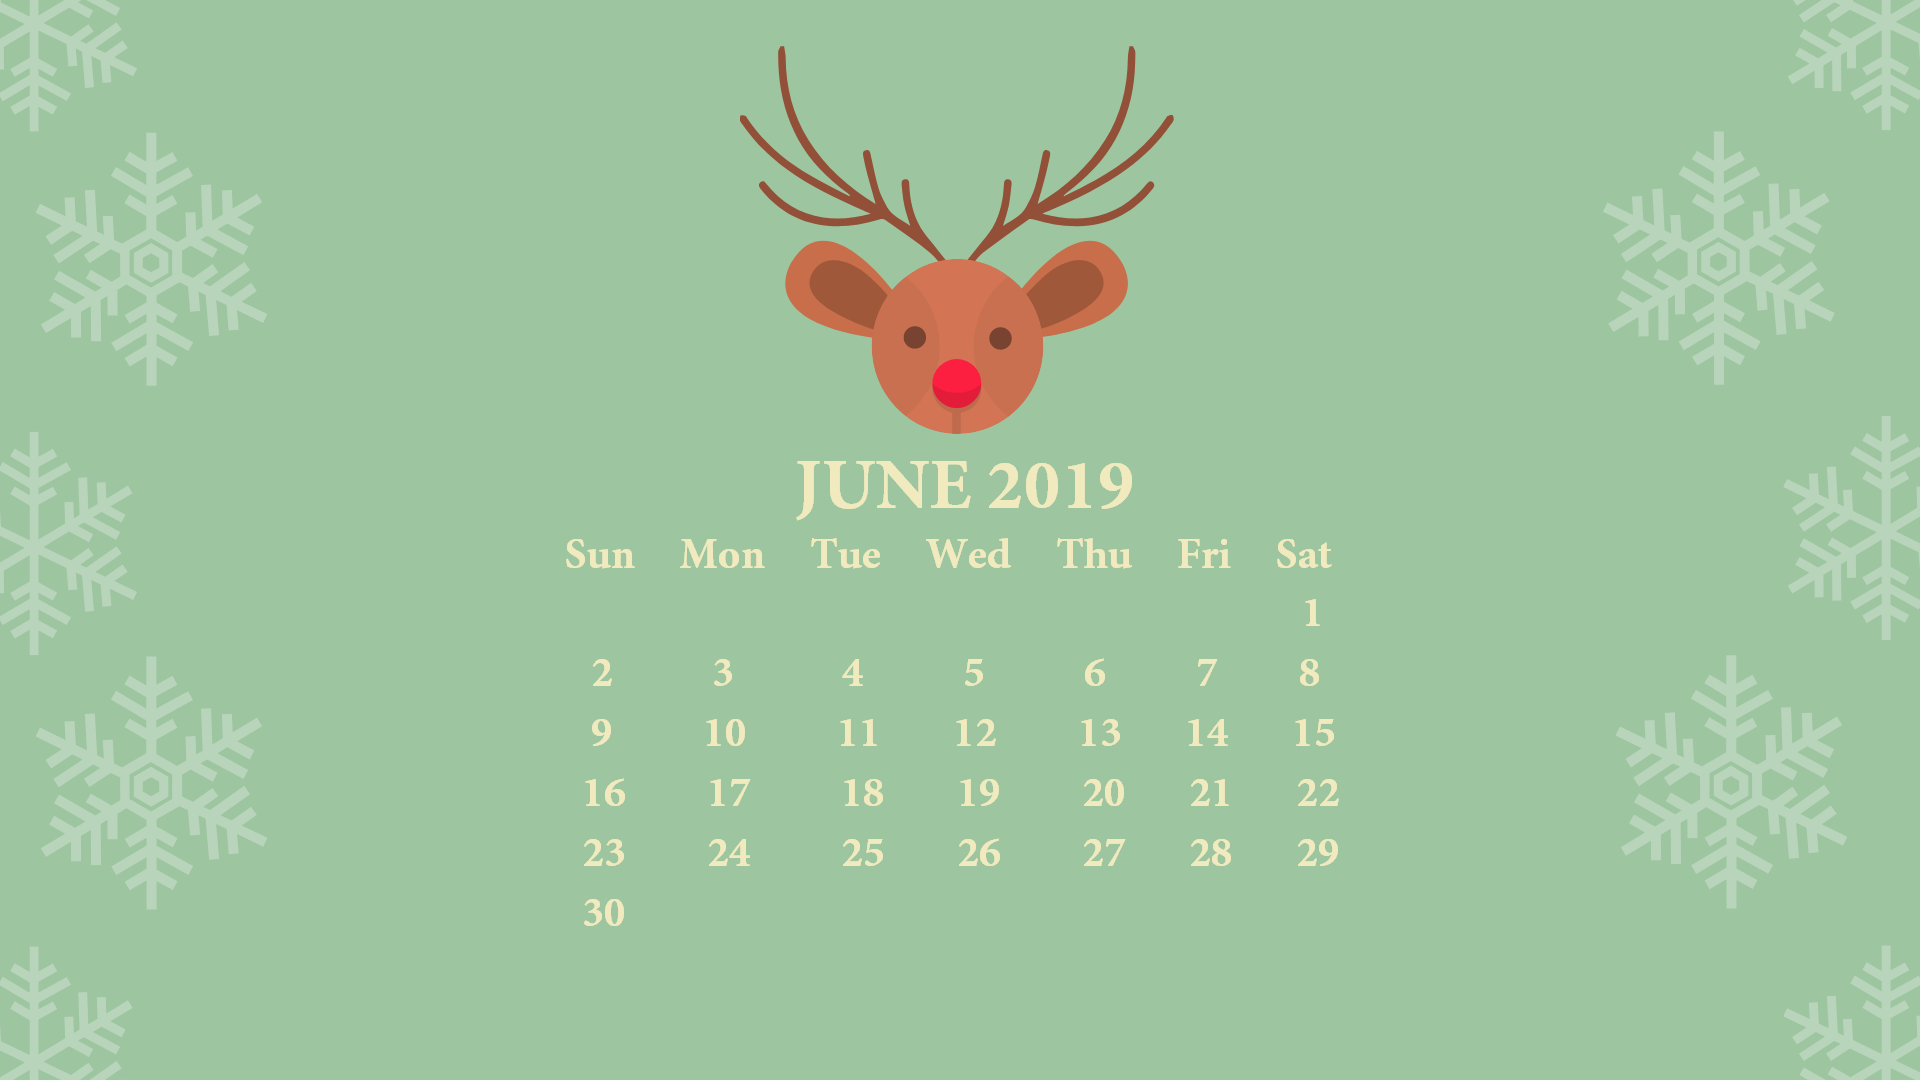 June 2019 Screensaver Background Calendar